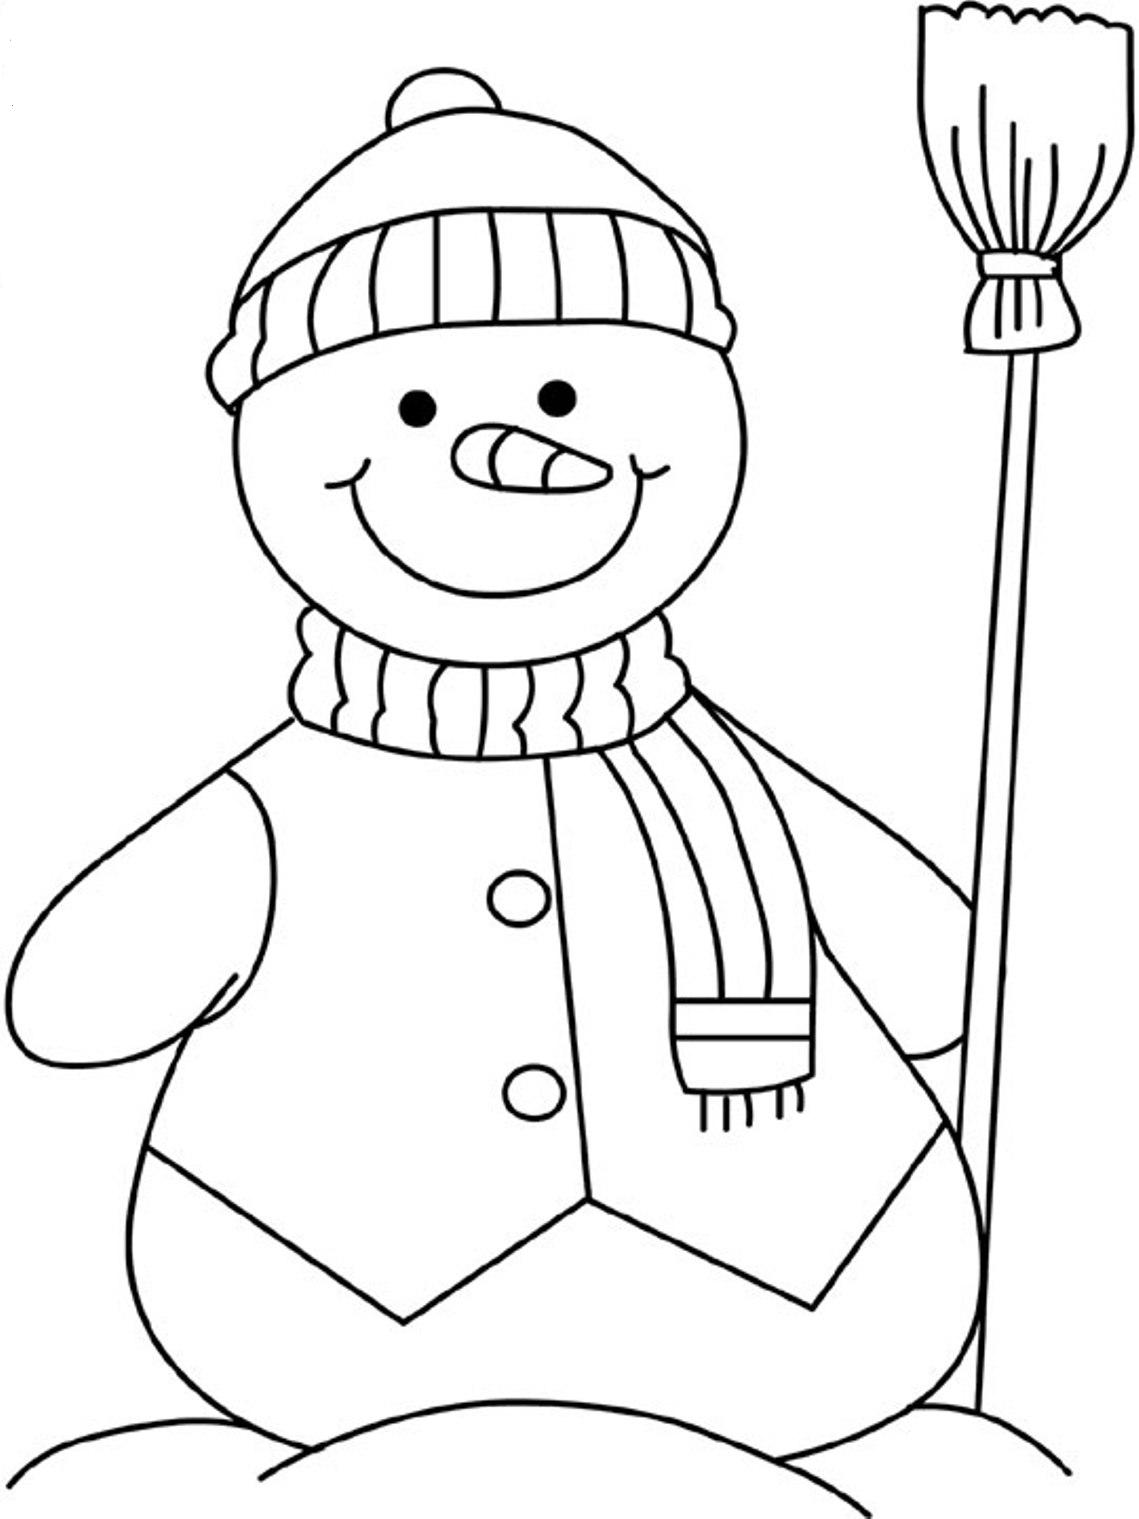 snowman coloring sheet get this snowman coloring pages free printable 66396 sheet coloring snowman